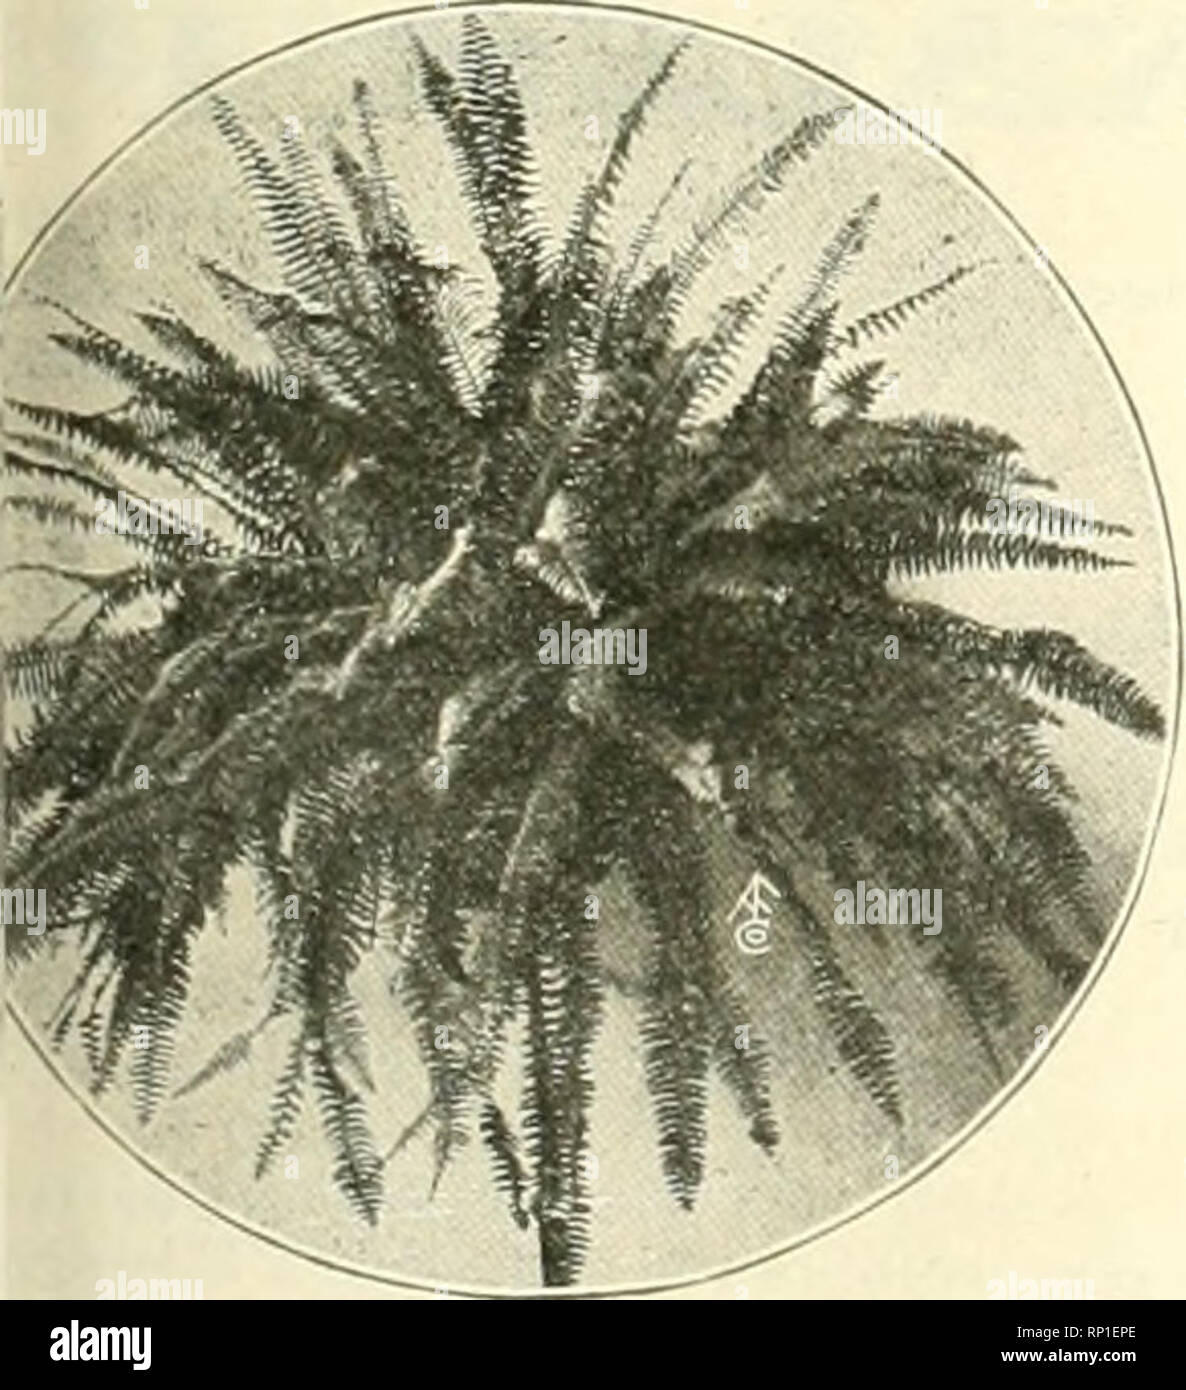 . The American florist : a weekly journal for the trade. Floriculture; Florists. Pteris Serrulata. FERNS BOSTOAS. Each Doz. lui) 1,000 $3.0U $25.00 $G.OO 45.00 SO.?.-; 9.00 1.00 i:;.oo 1.50 18.00 Baskets, each .*1.00 FERNS, FOR DISHES. 2-in., »3 per $25 per 1,110(1. um, 7-in., each $2.50 us, 4-in $1J!5 per doz.; $S per 100 PALMS KENTIA FORSTERIANA. t High Leaves Each Pot 3-in. 4-in. 5-in. 7-in. 7-in. S-in. 9-in. 9-in. KENTIA BELMORIAIVA. High Leaves Each Doz. S-in. S-lO-in. .12-15-in. .18-20-in. .28-30-in. .40-44-in. .44-45-in. .48-50-in. .50-54-in. 4 4-5 4-5 5-6 6-7 6-7 7-8 7-8 7-8 $0.73 2..5 - Stock Image